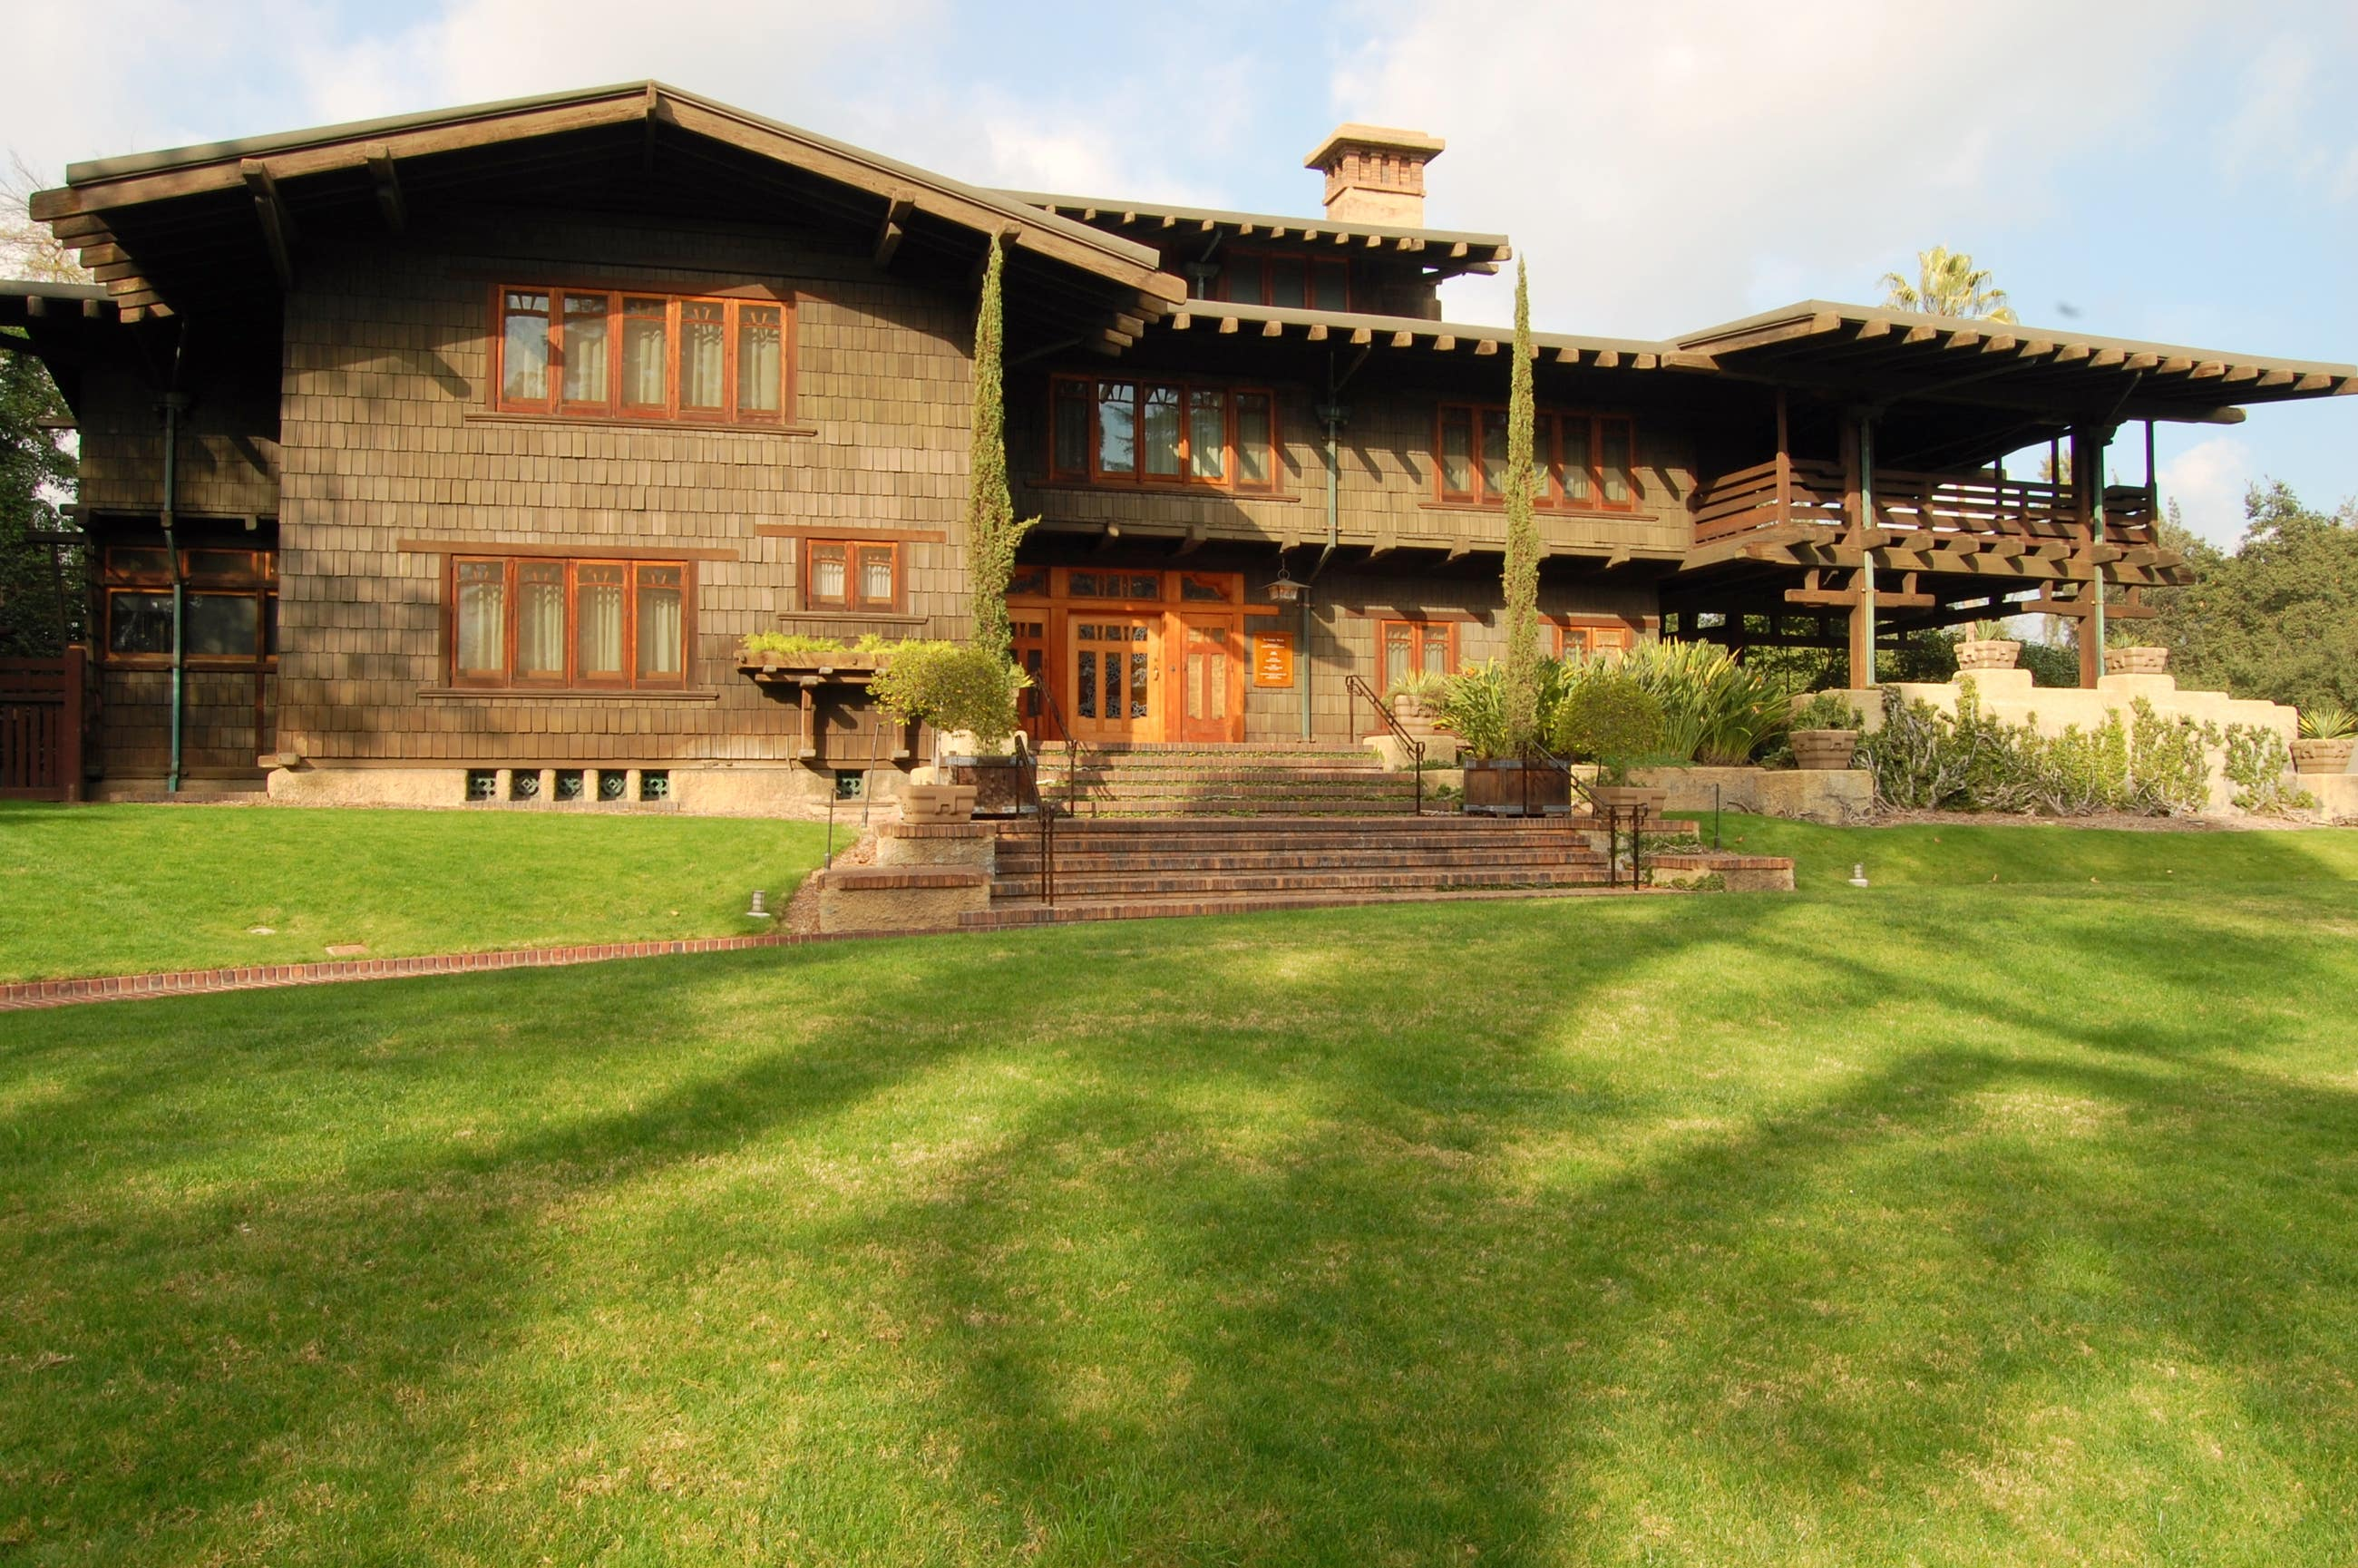 Exterior of the Gamble House in Pasadena